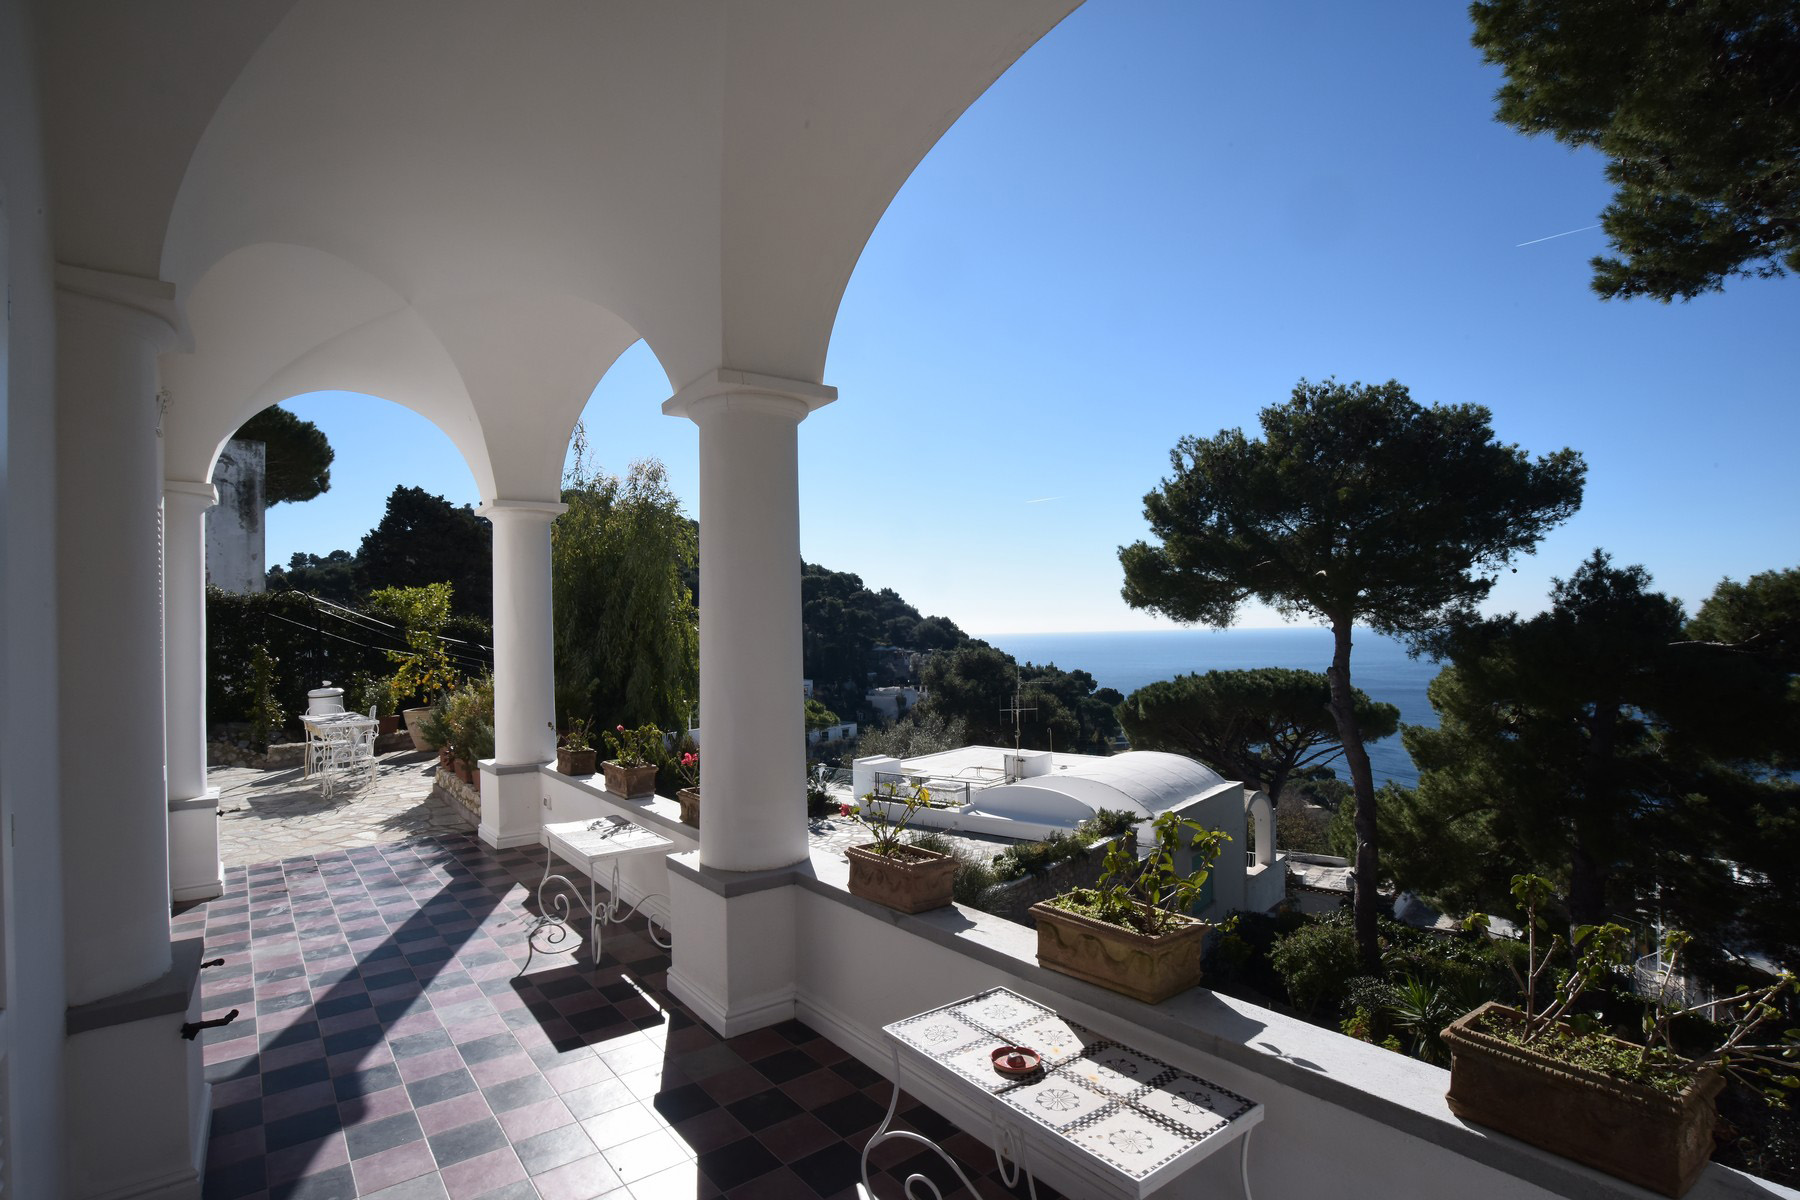 Single Family Home for Sale at Impressive Villa in the heart of Capri Capri, Italy